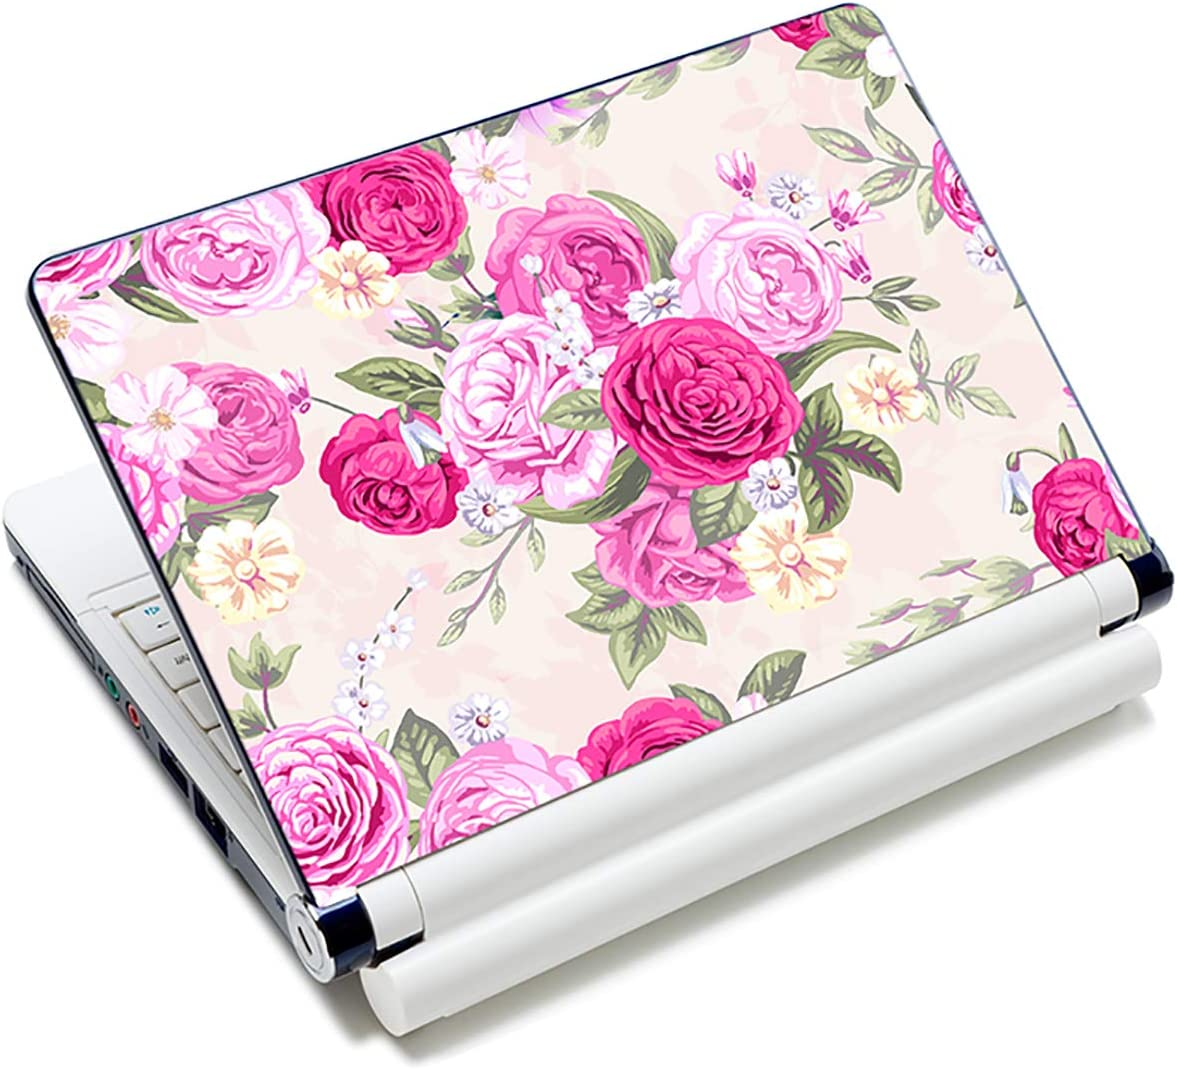 "Laptop Skin Sticker Decal,12"" 13"" 13.3"" 14"" 15"" 15.4"" 15.6"" Laptop Skin Sticker Protector Cover for Toshiba Hp Samsung Dell Apple Acer Leonovo Sony Asus Laptop Notebook (Pink Flowers)"